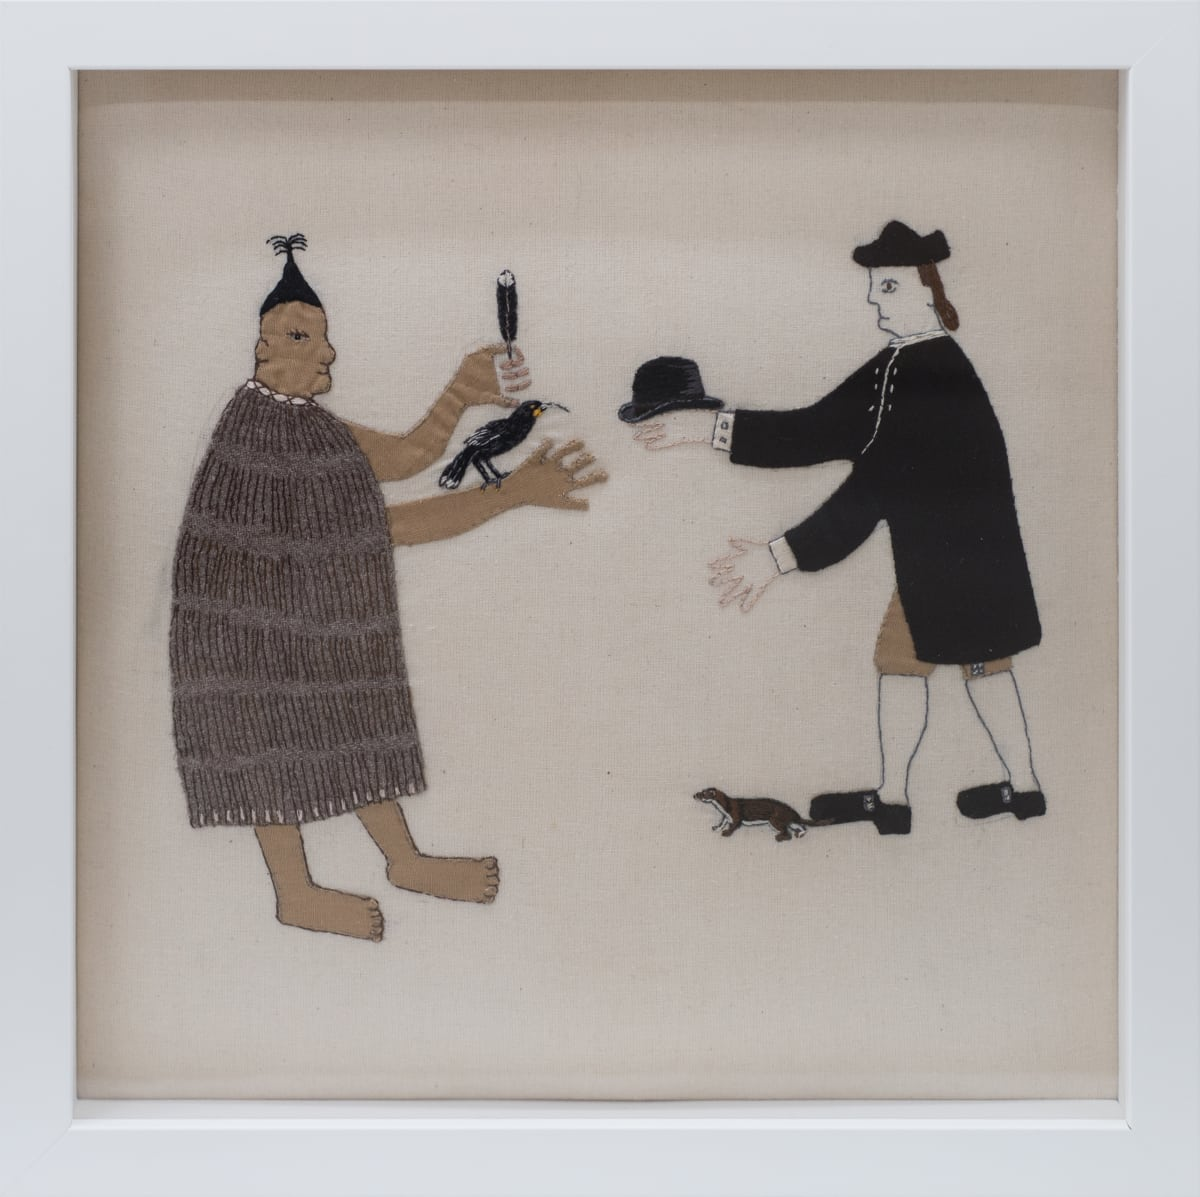 Sarah Munro, Trade Items: Bowler Hat, Stoat, Huia, 2018